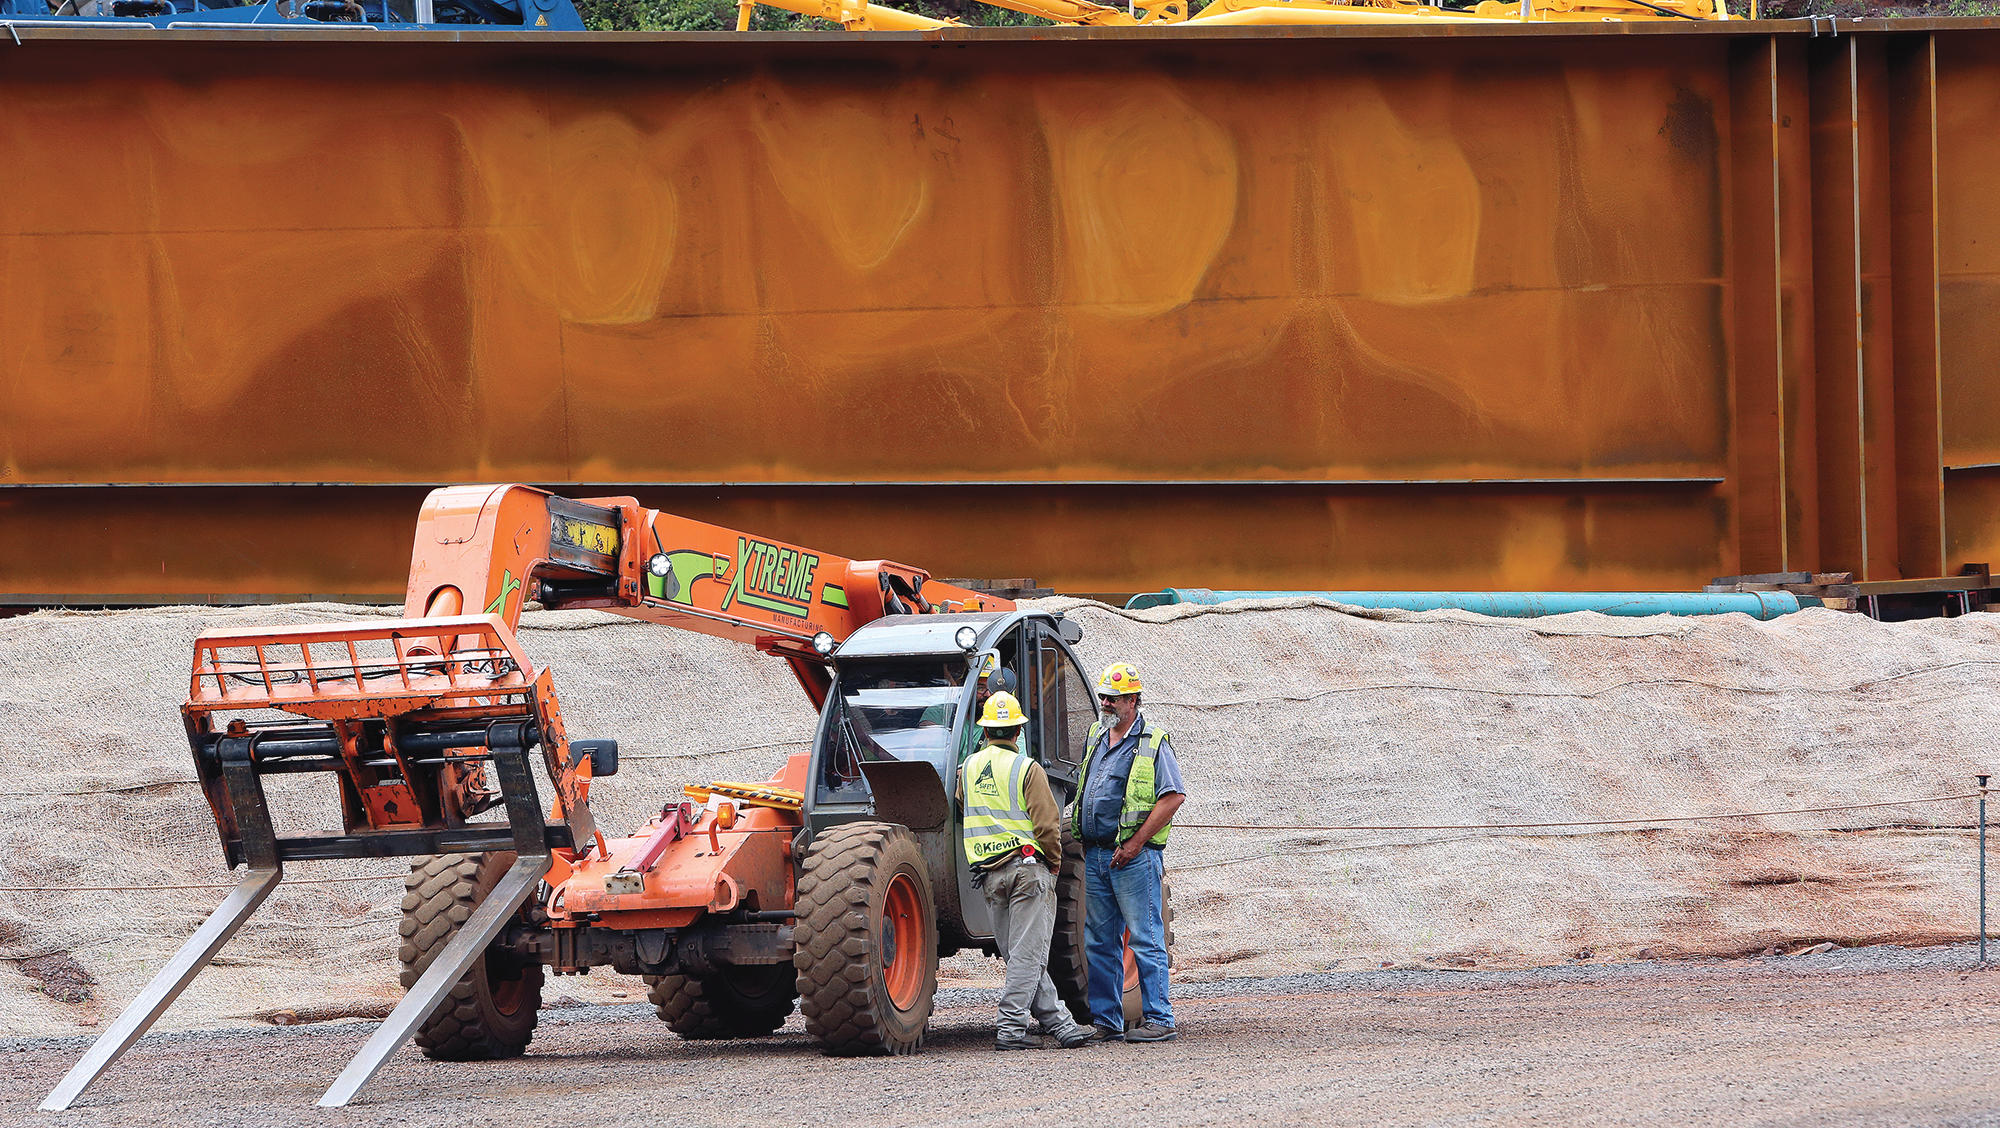 T08.24.2016 -- Steve Kuchera -- kucheraBRIDGE0827c4 -- Construction workers talk at a forklift near one of the steel beams that will help make the U.S. Highway 53 bridge being built across the Rouchleau pit. Made of two pieces bolted together, the beam is approximately 200 feet long and 15 feet tall. Workers are assembling the crane that will lift the bridge's beams into place. Steve Kuchera / skuchera@duluthnews.com